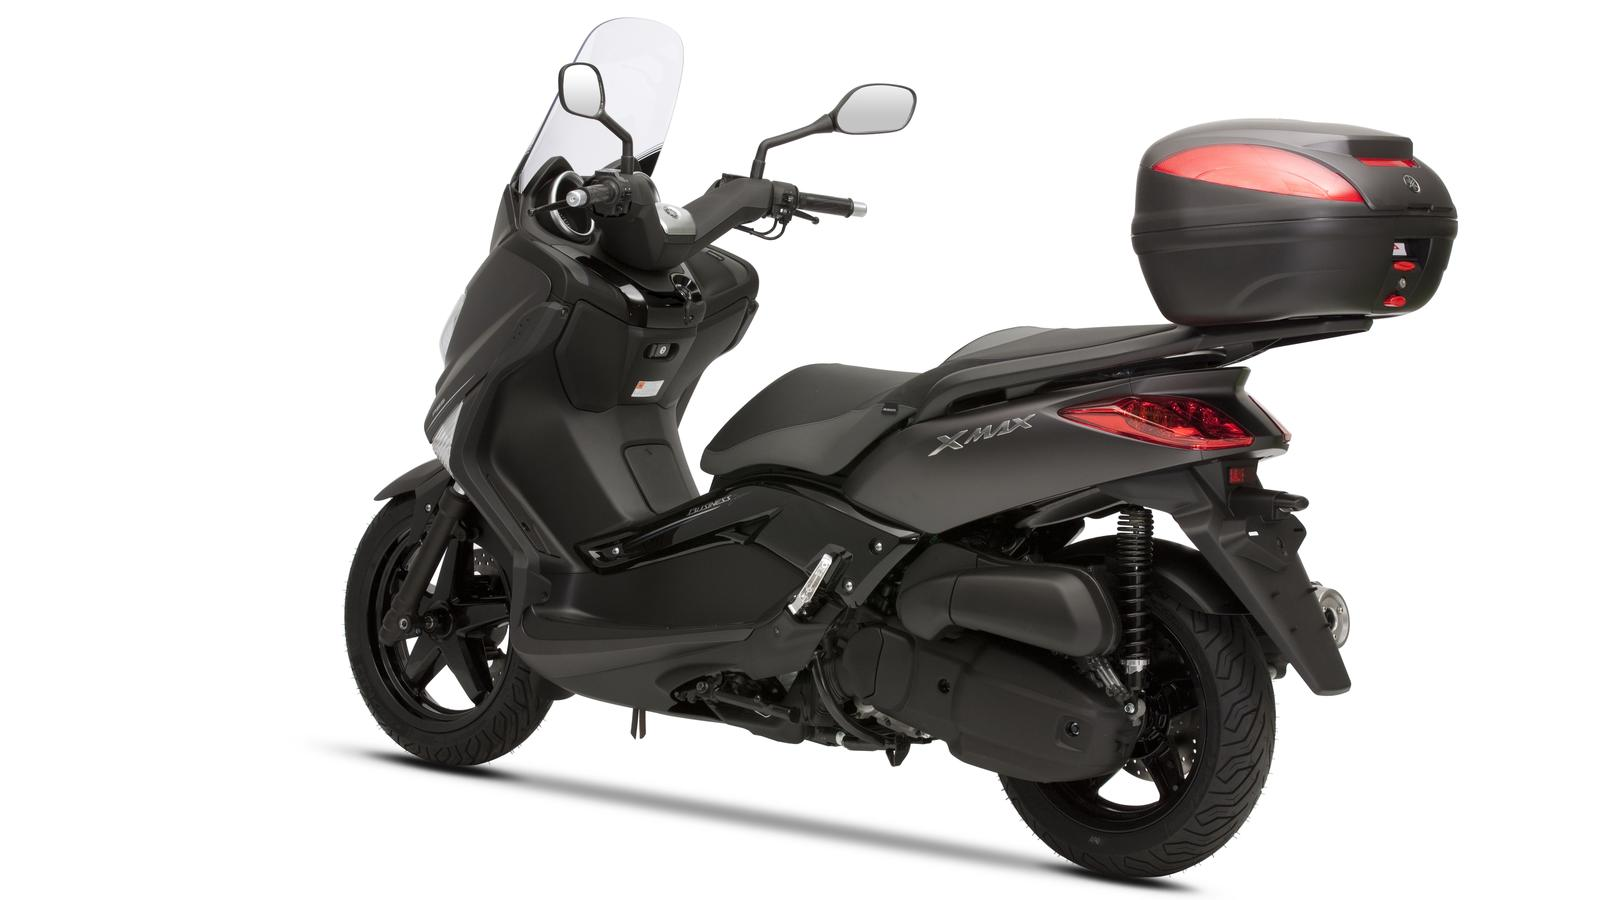 fiche revue technique yamaha x max 125 business 2011. Black Bedroom Furniture Sets. Home Design Ideas